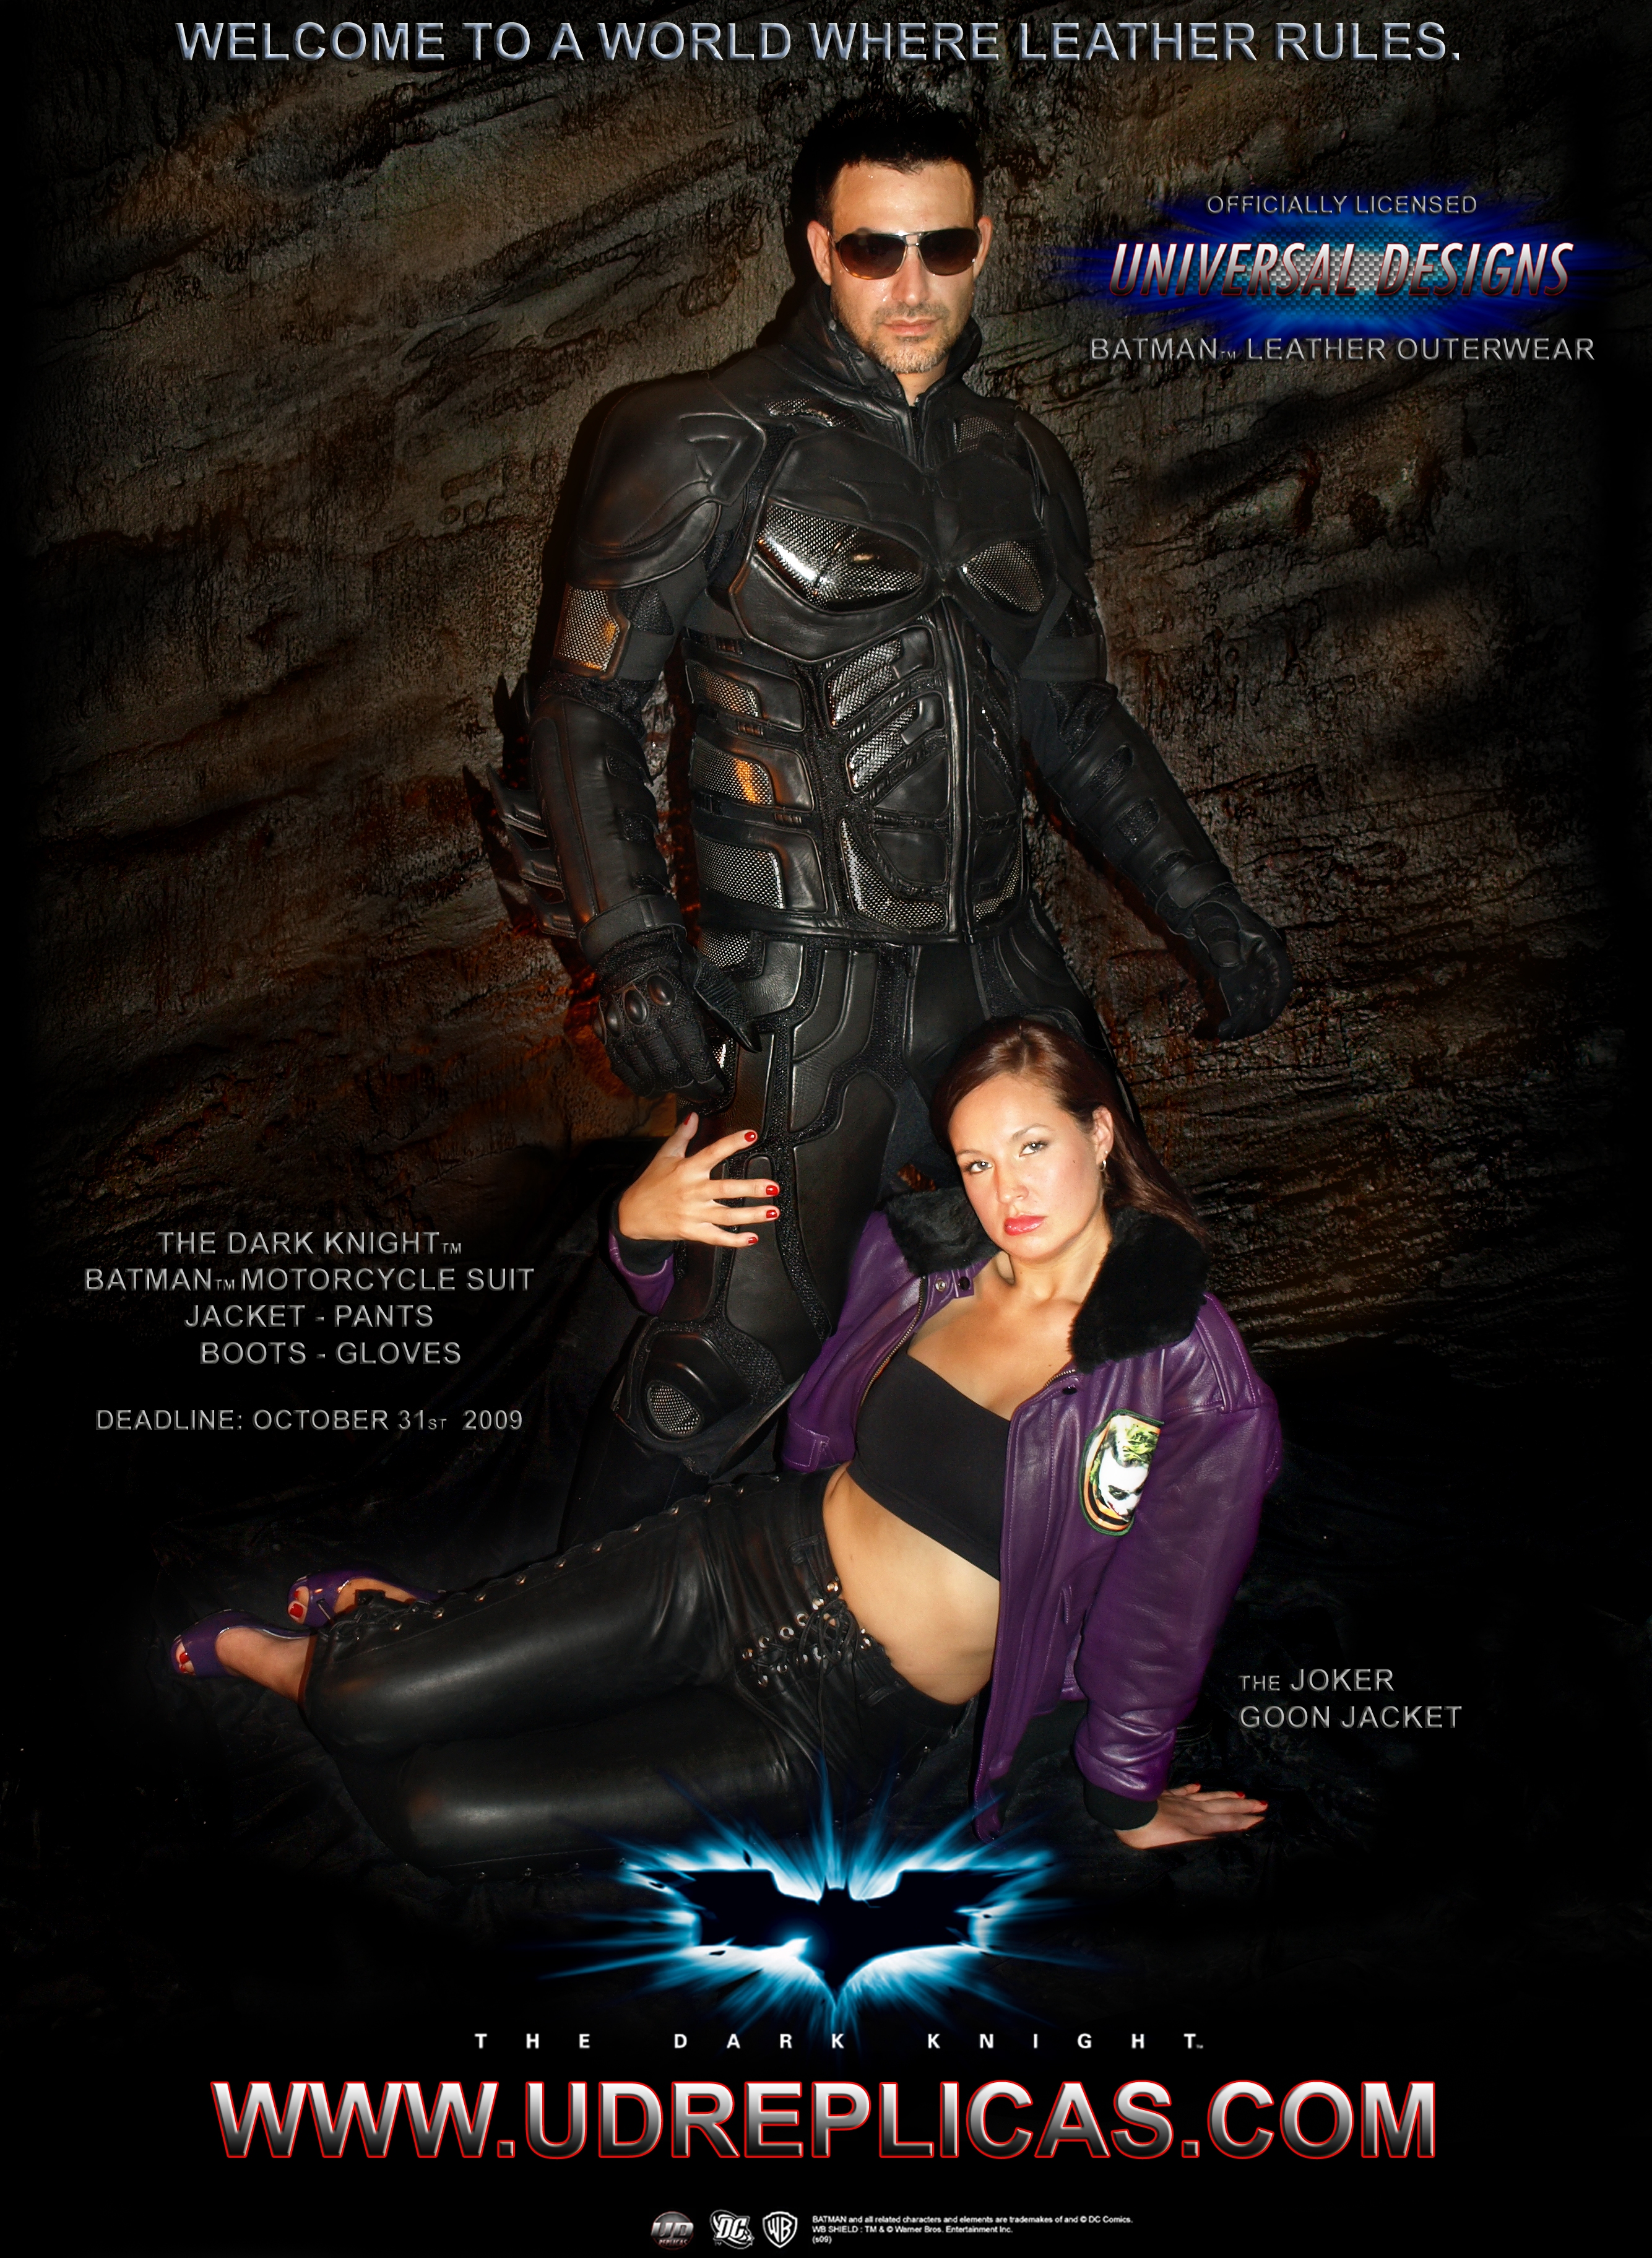 The Dark Knight Rises - Leather Outerwear 2009 Promo Image ...  sc 1 th 263 & UD Replicas - Official Superhero Outerwear